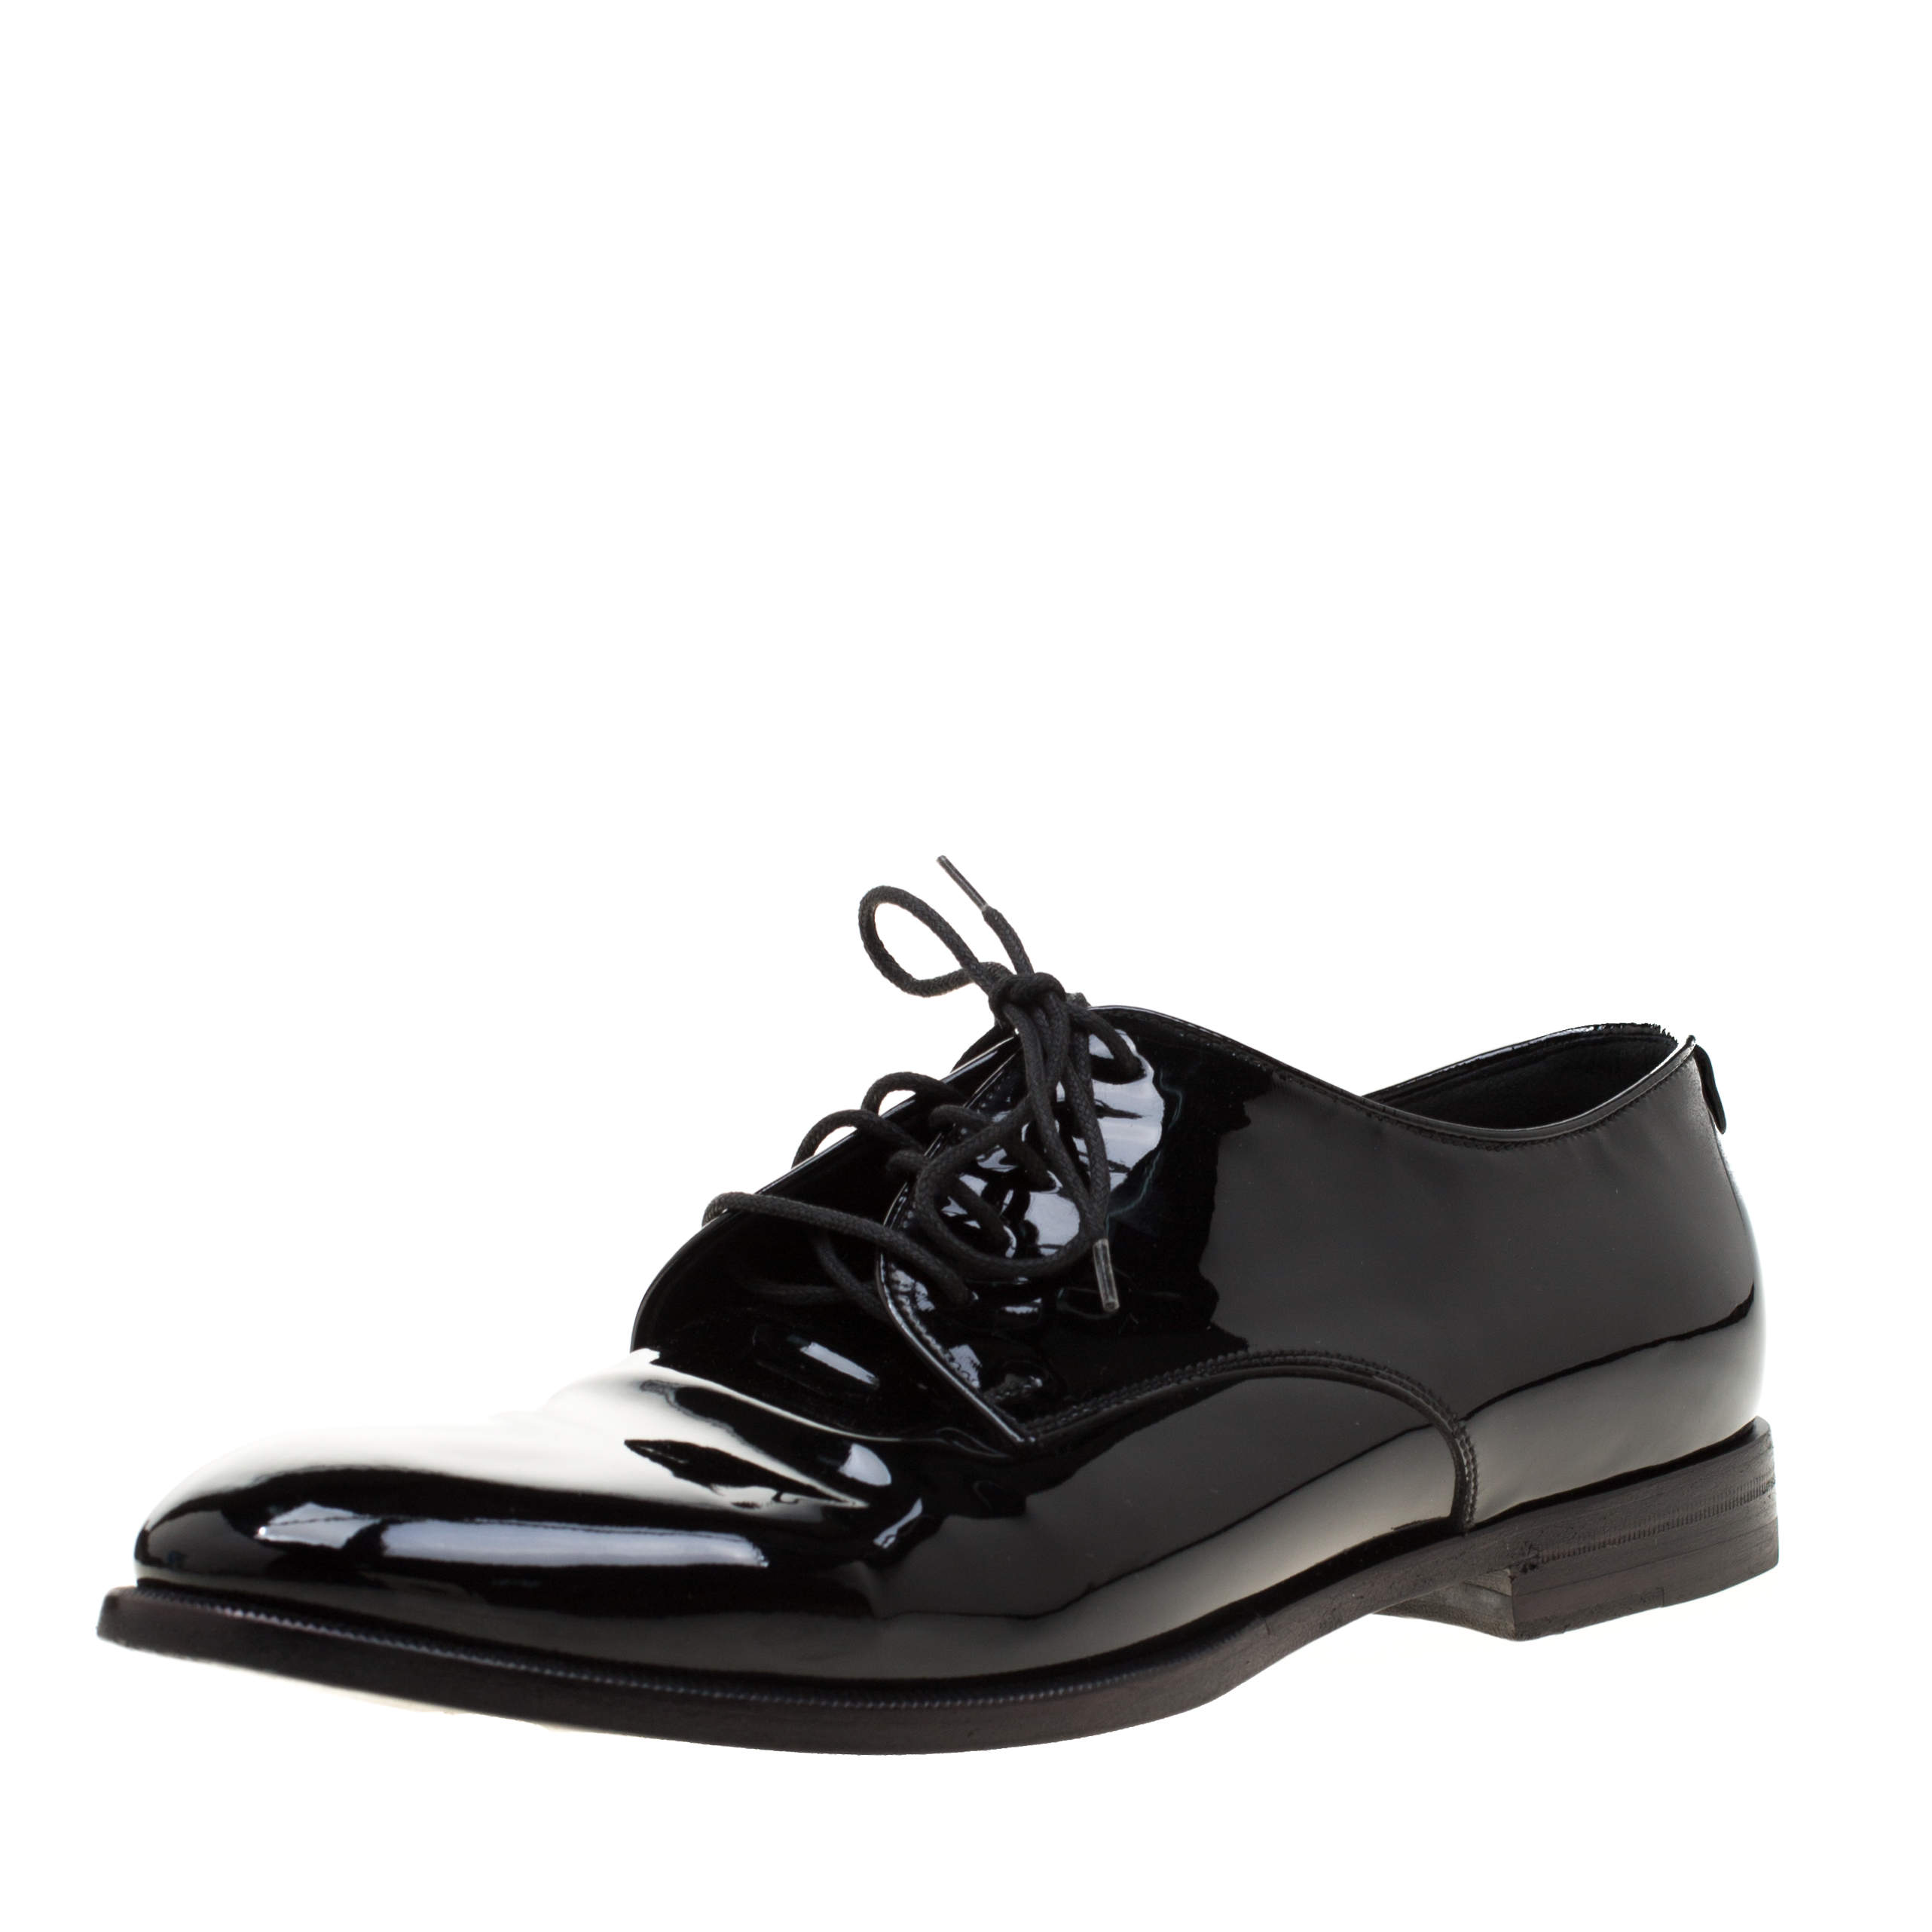 Gucci Black Patent Leather Lace Up Derby Size 41.5